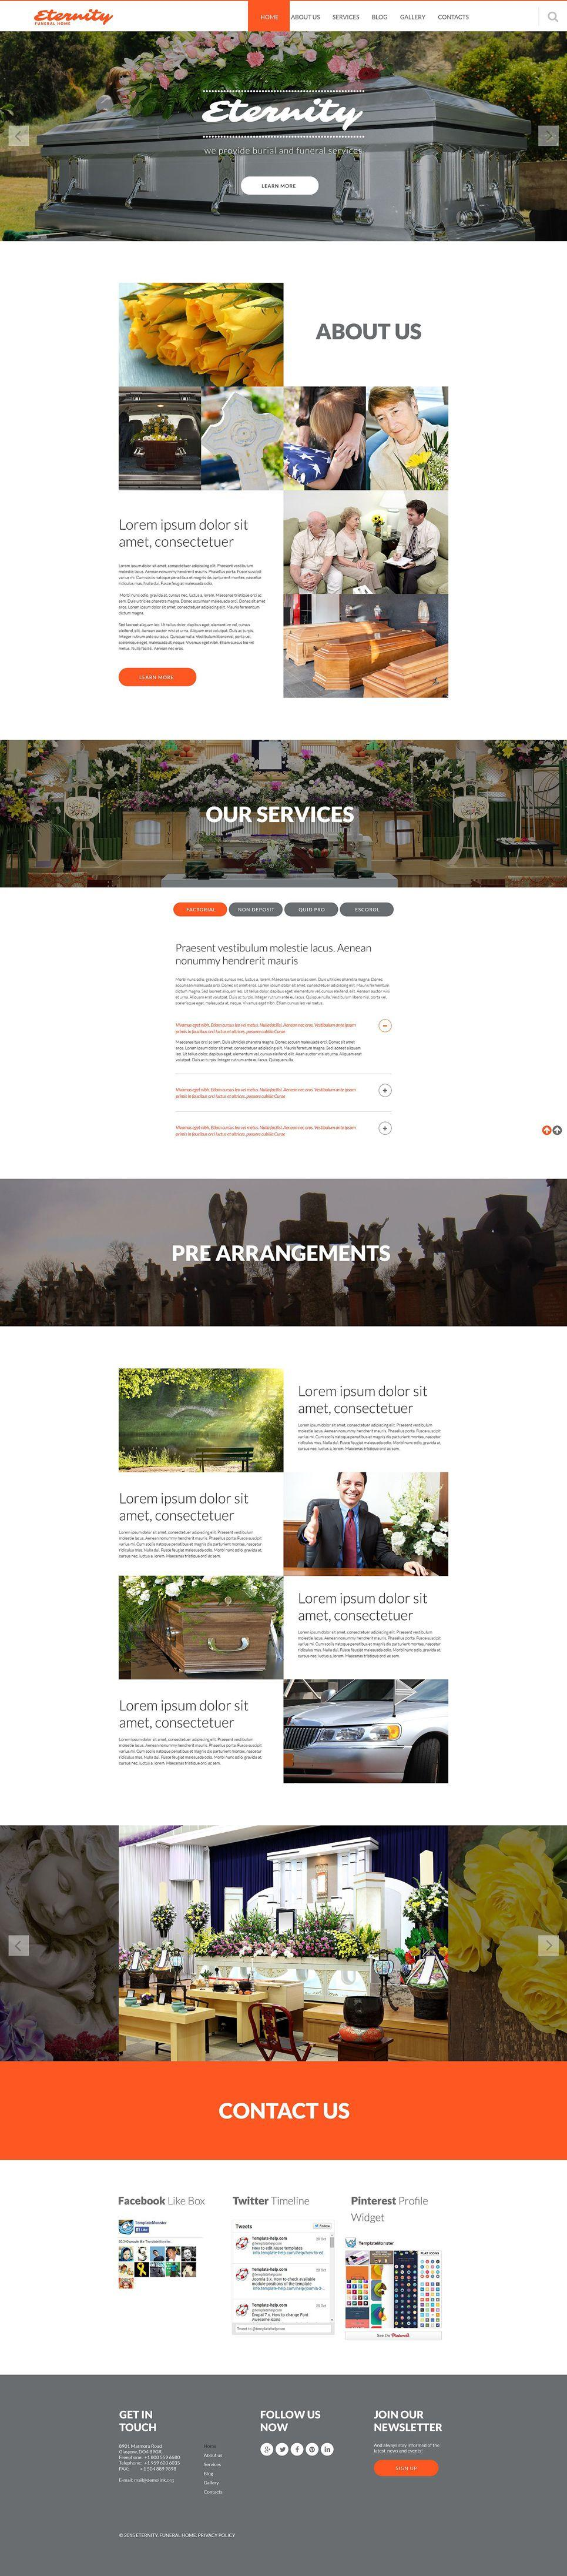 Funeral Website Design Templates